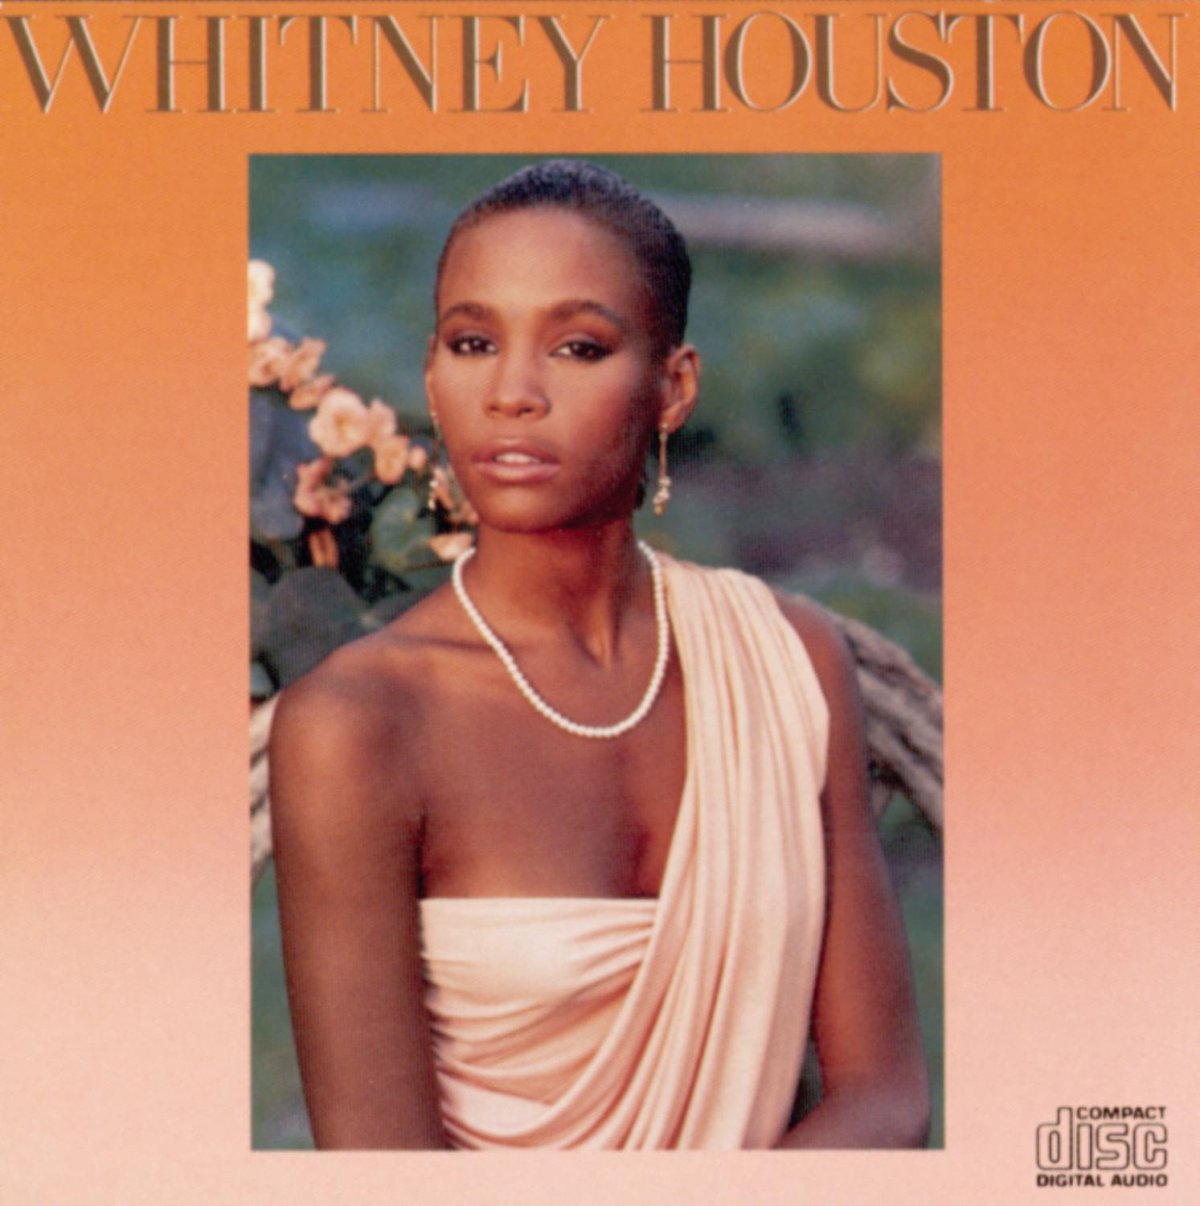 Whitney Houston – 'Whitney Houston' (14 de febrero de 1985)